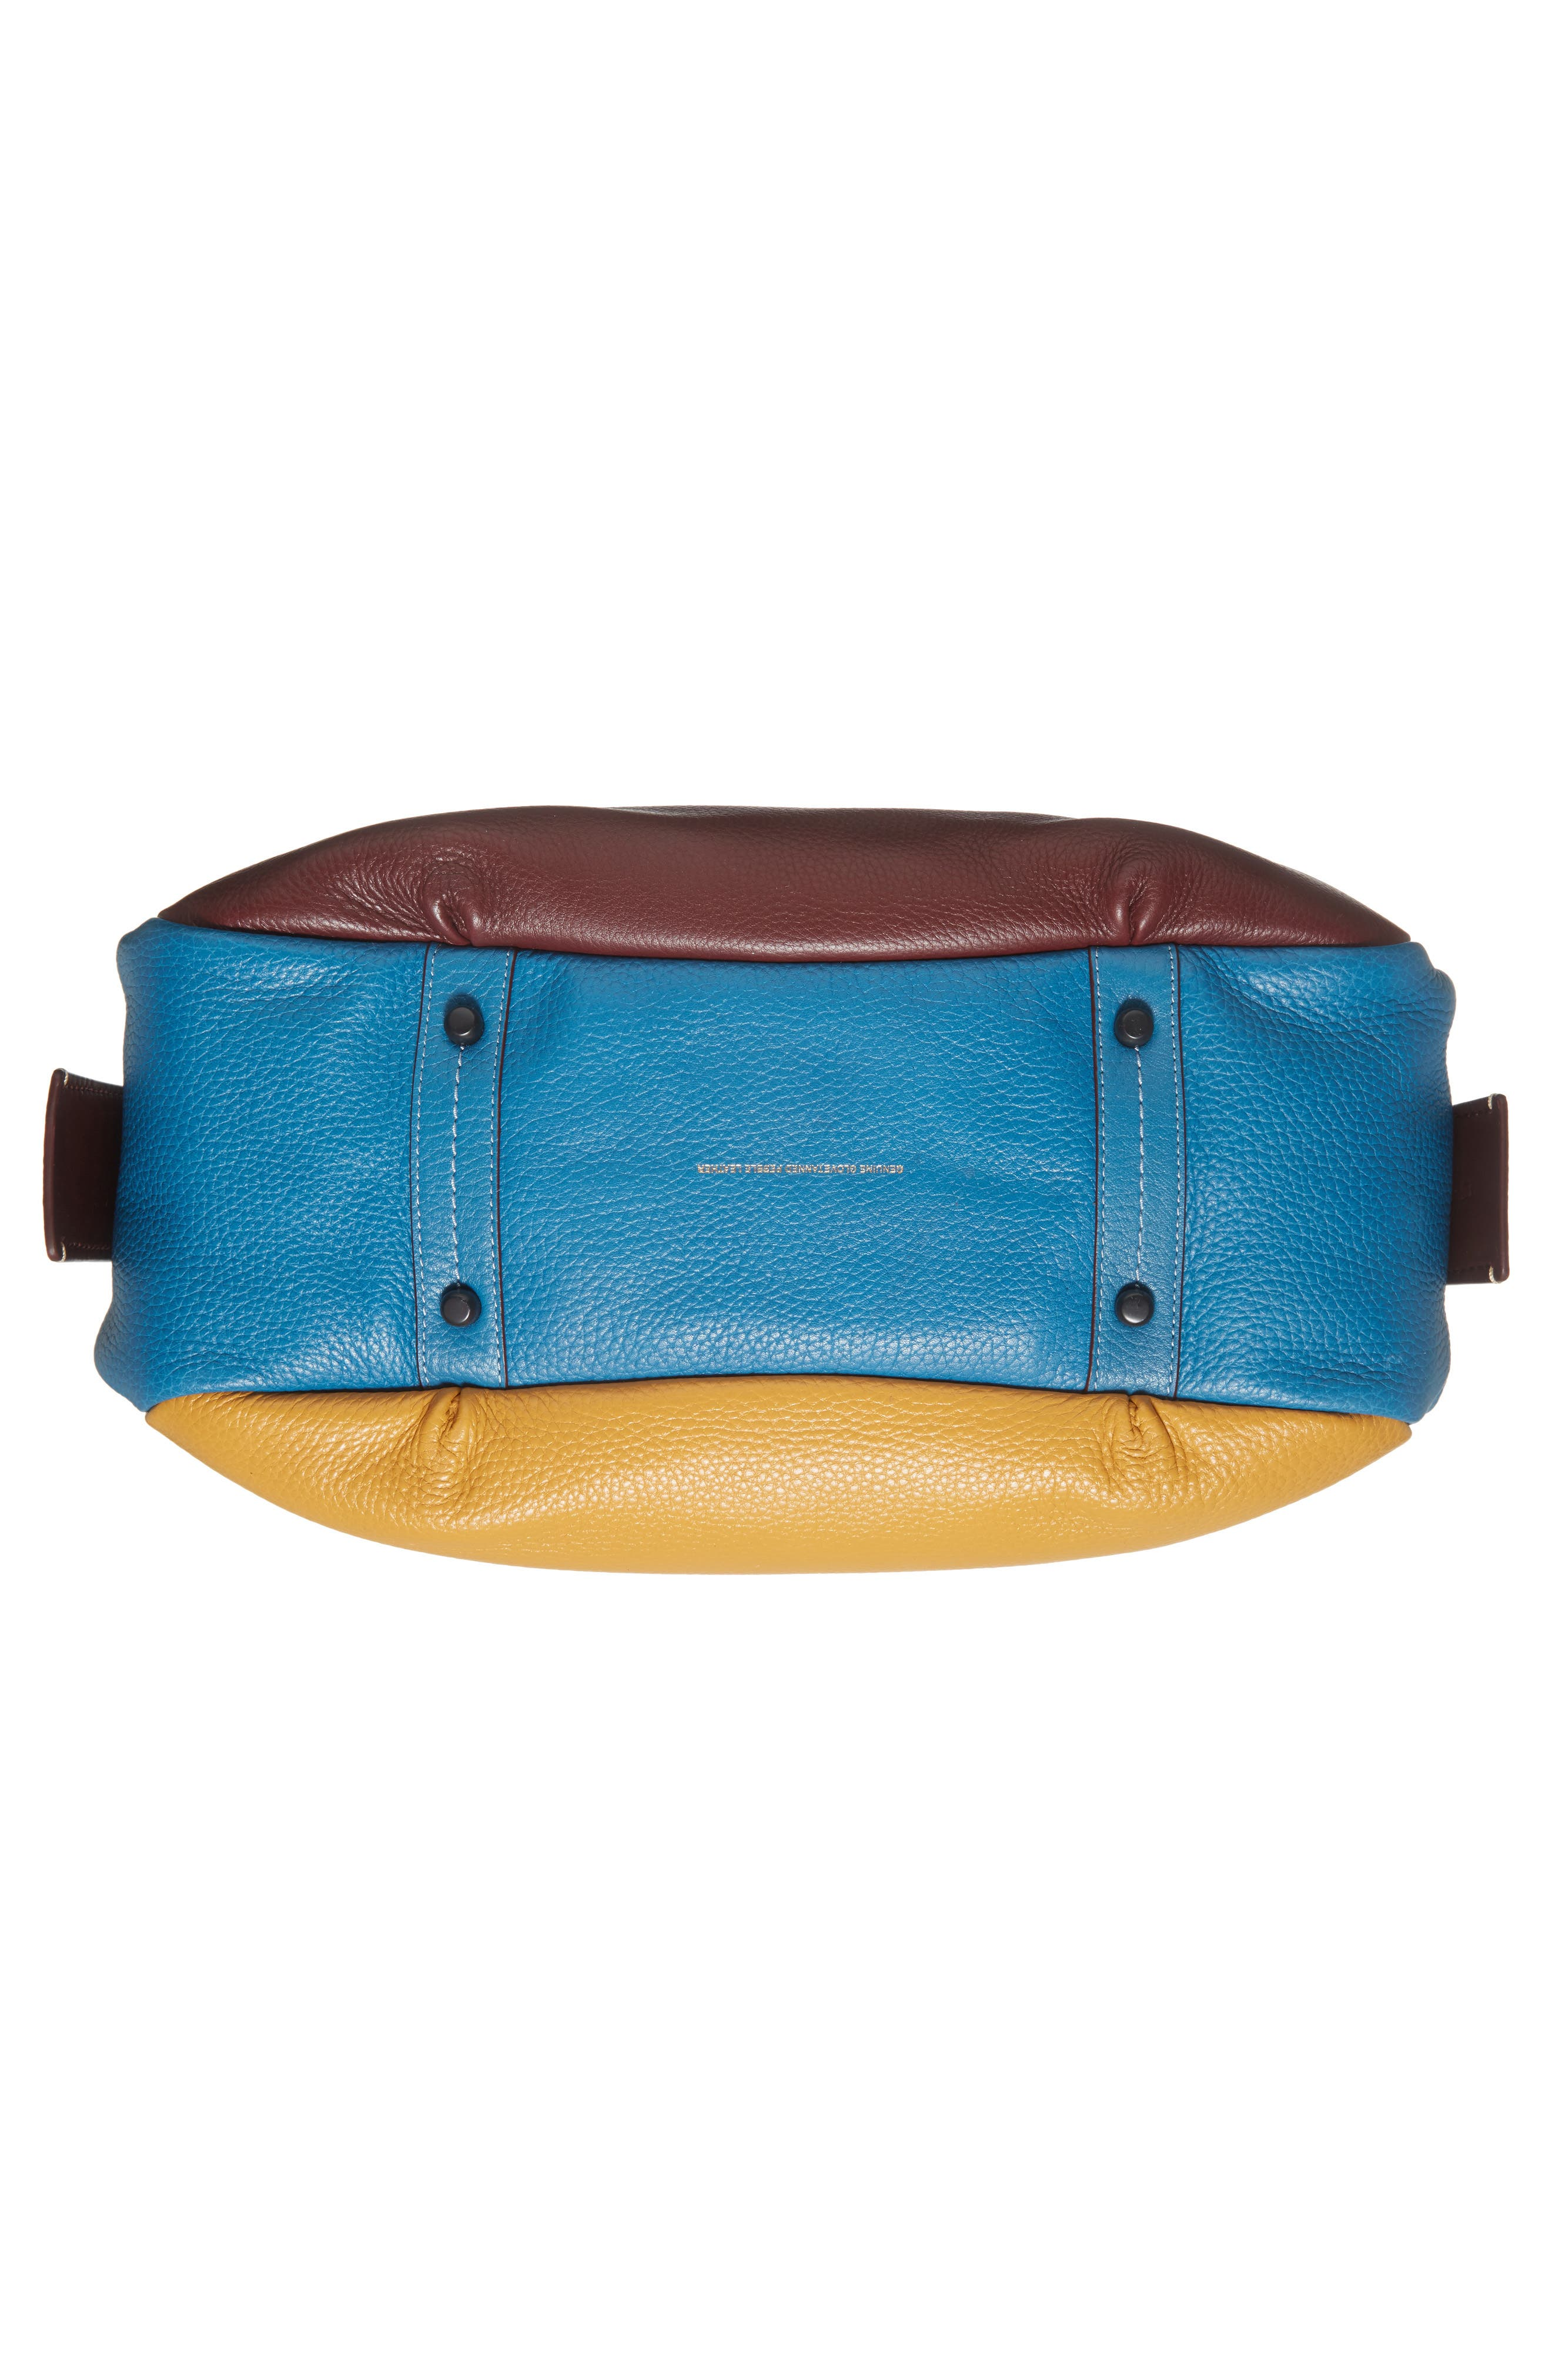 Colorblock Bandit Leather Hobo Bag,                             Alternate thumbnail 5, color,                             Goldenrod Multi